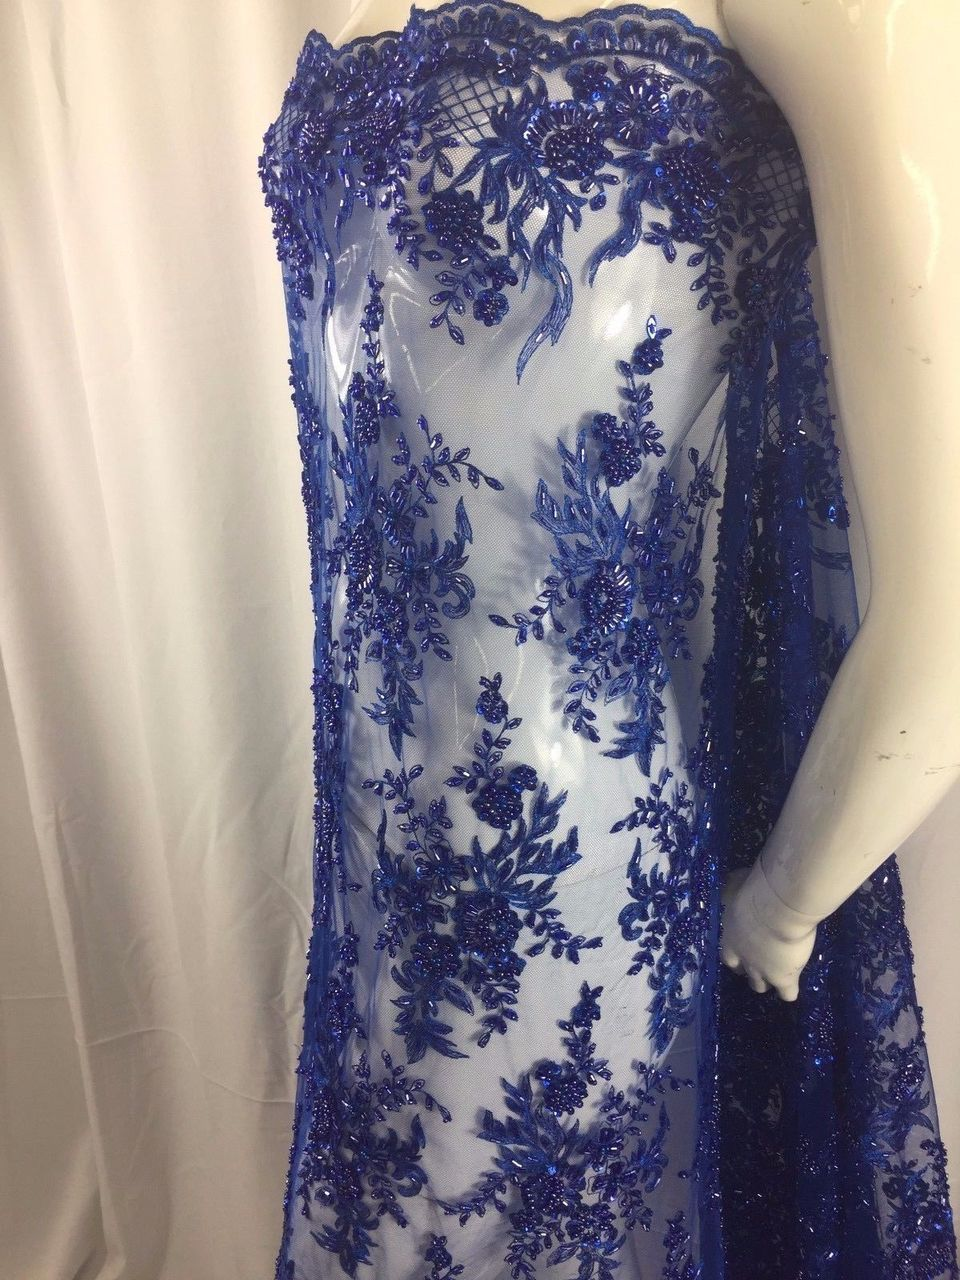 Super Bridal luxury wedding beaded royal blue mesh lace fabric. Sold by the yard - KINGDOM OF FABRICS